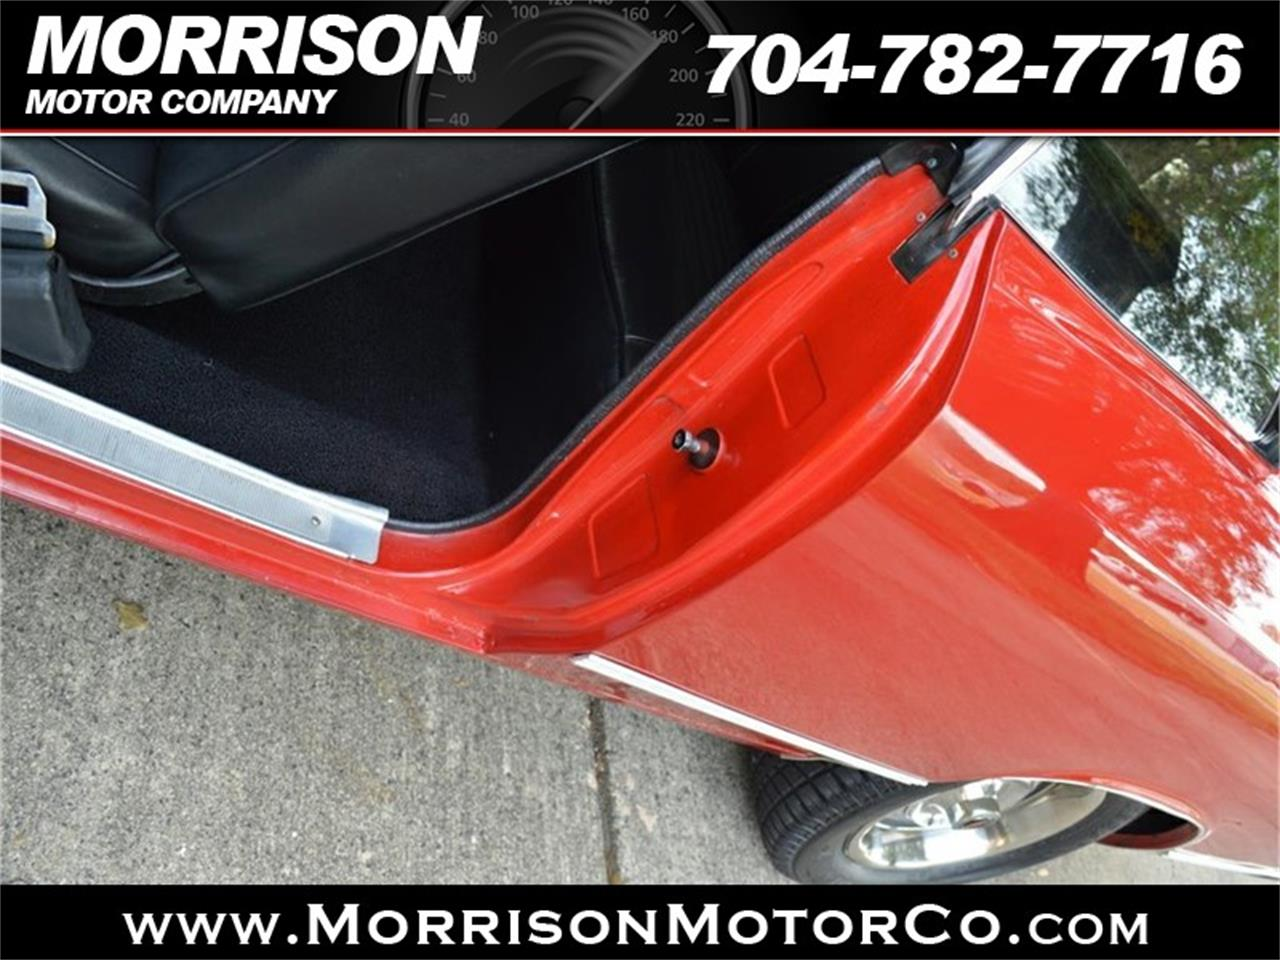 Large Picture of '67 Chevrolet Chevelle Malibu located in Concord North Carolina - $24,900.00 Offered by Morrison Motor Company - P626